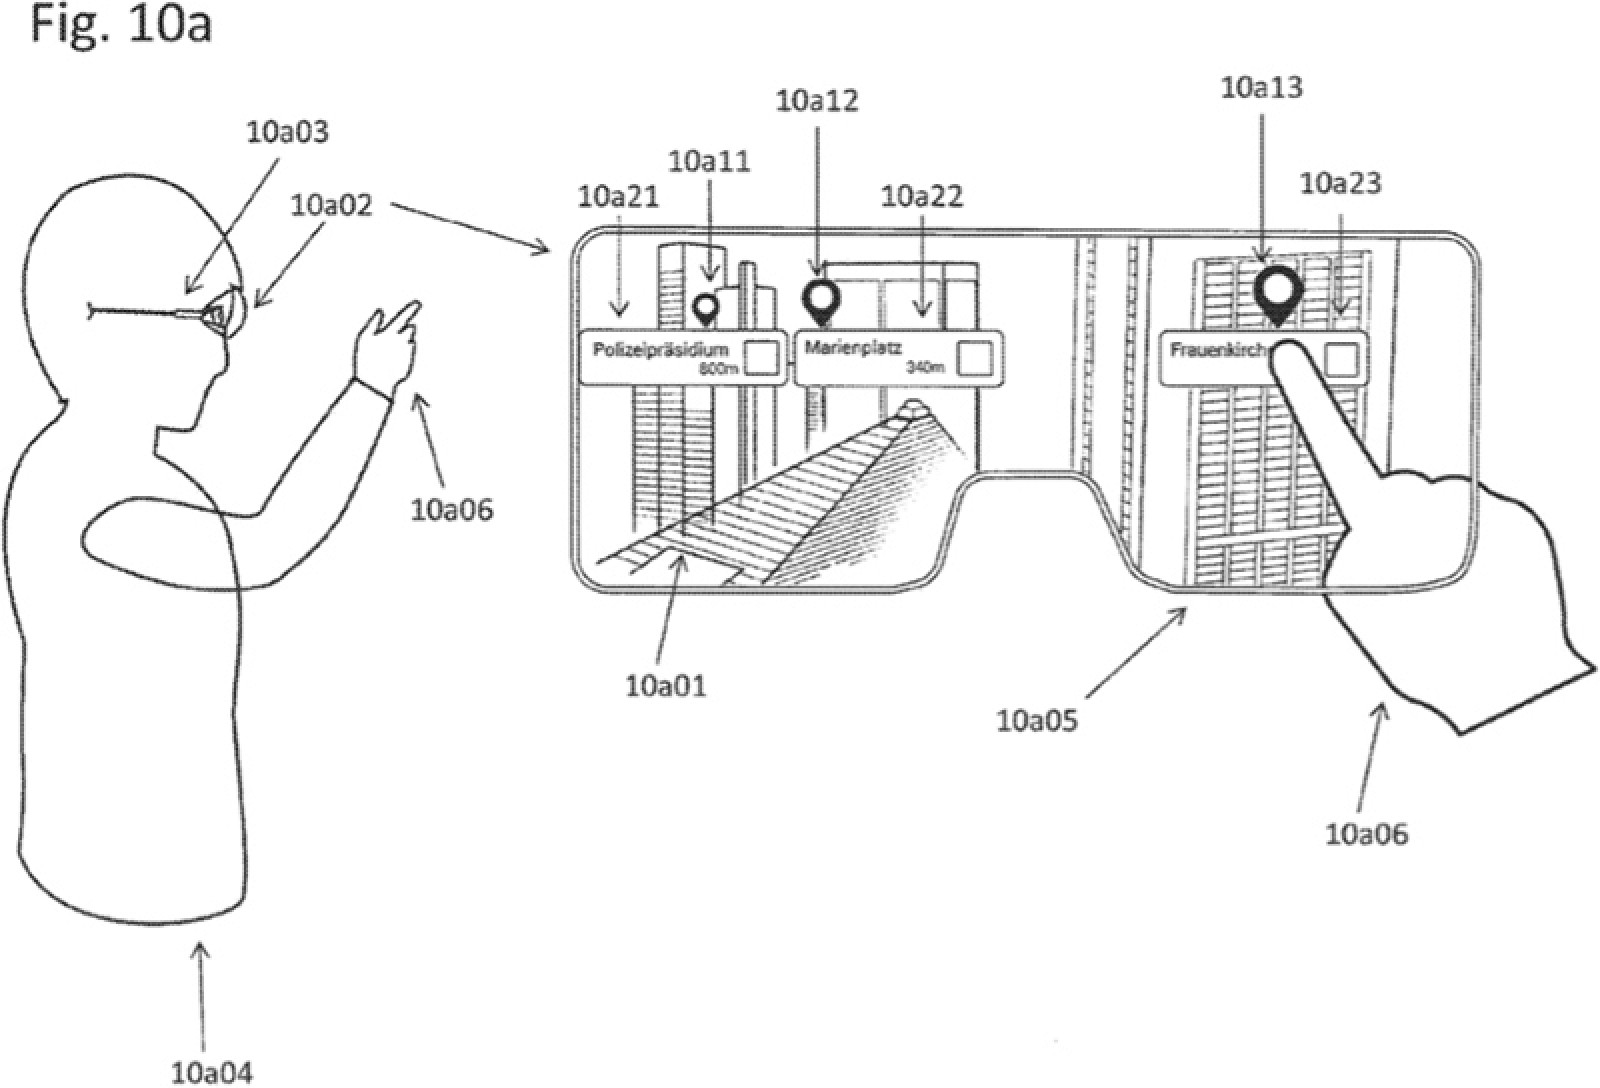 Apple Outlines How Augmented Reality Glasses Could Overlay